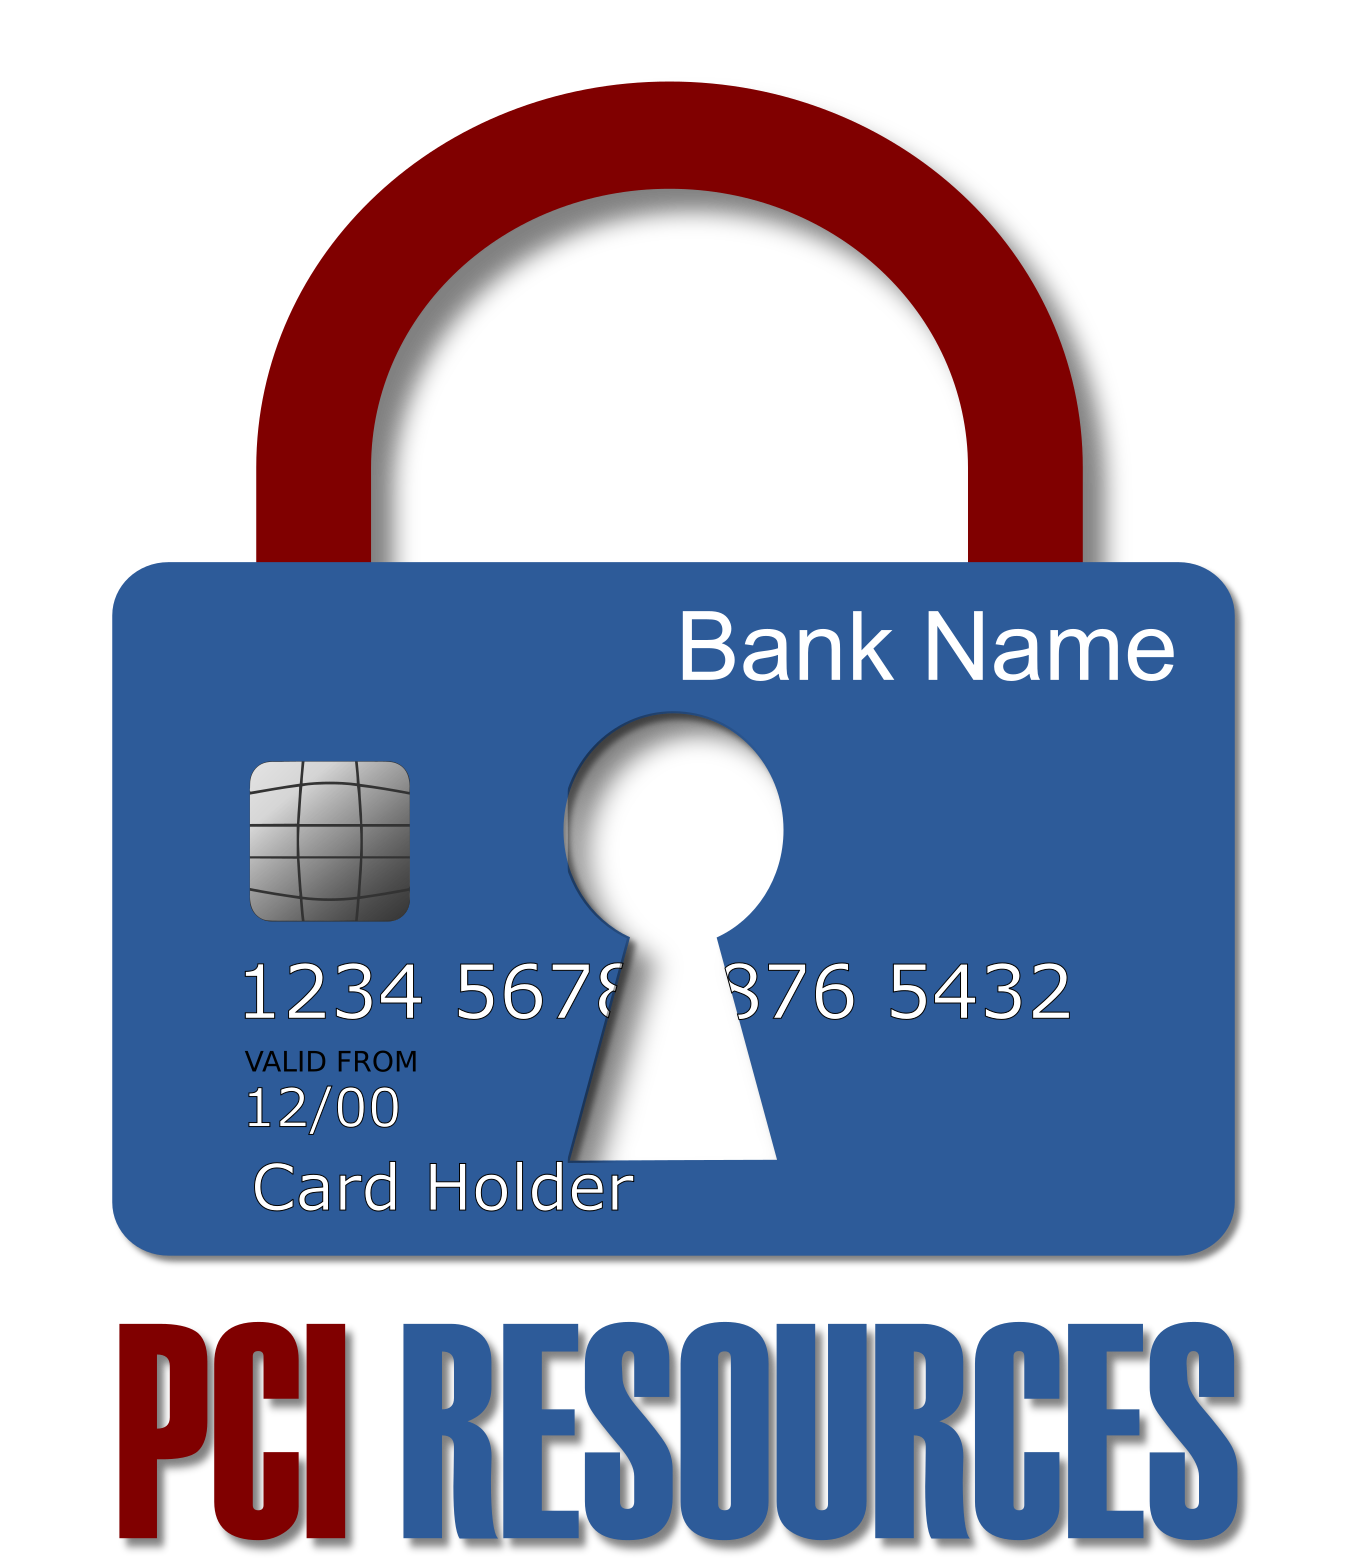 PCI DSS Risk Assessment — PCI Resources